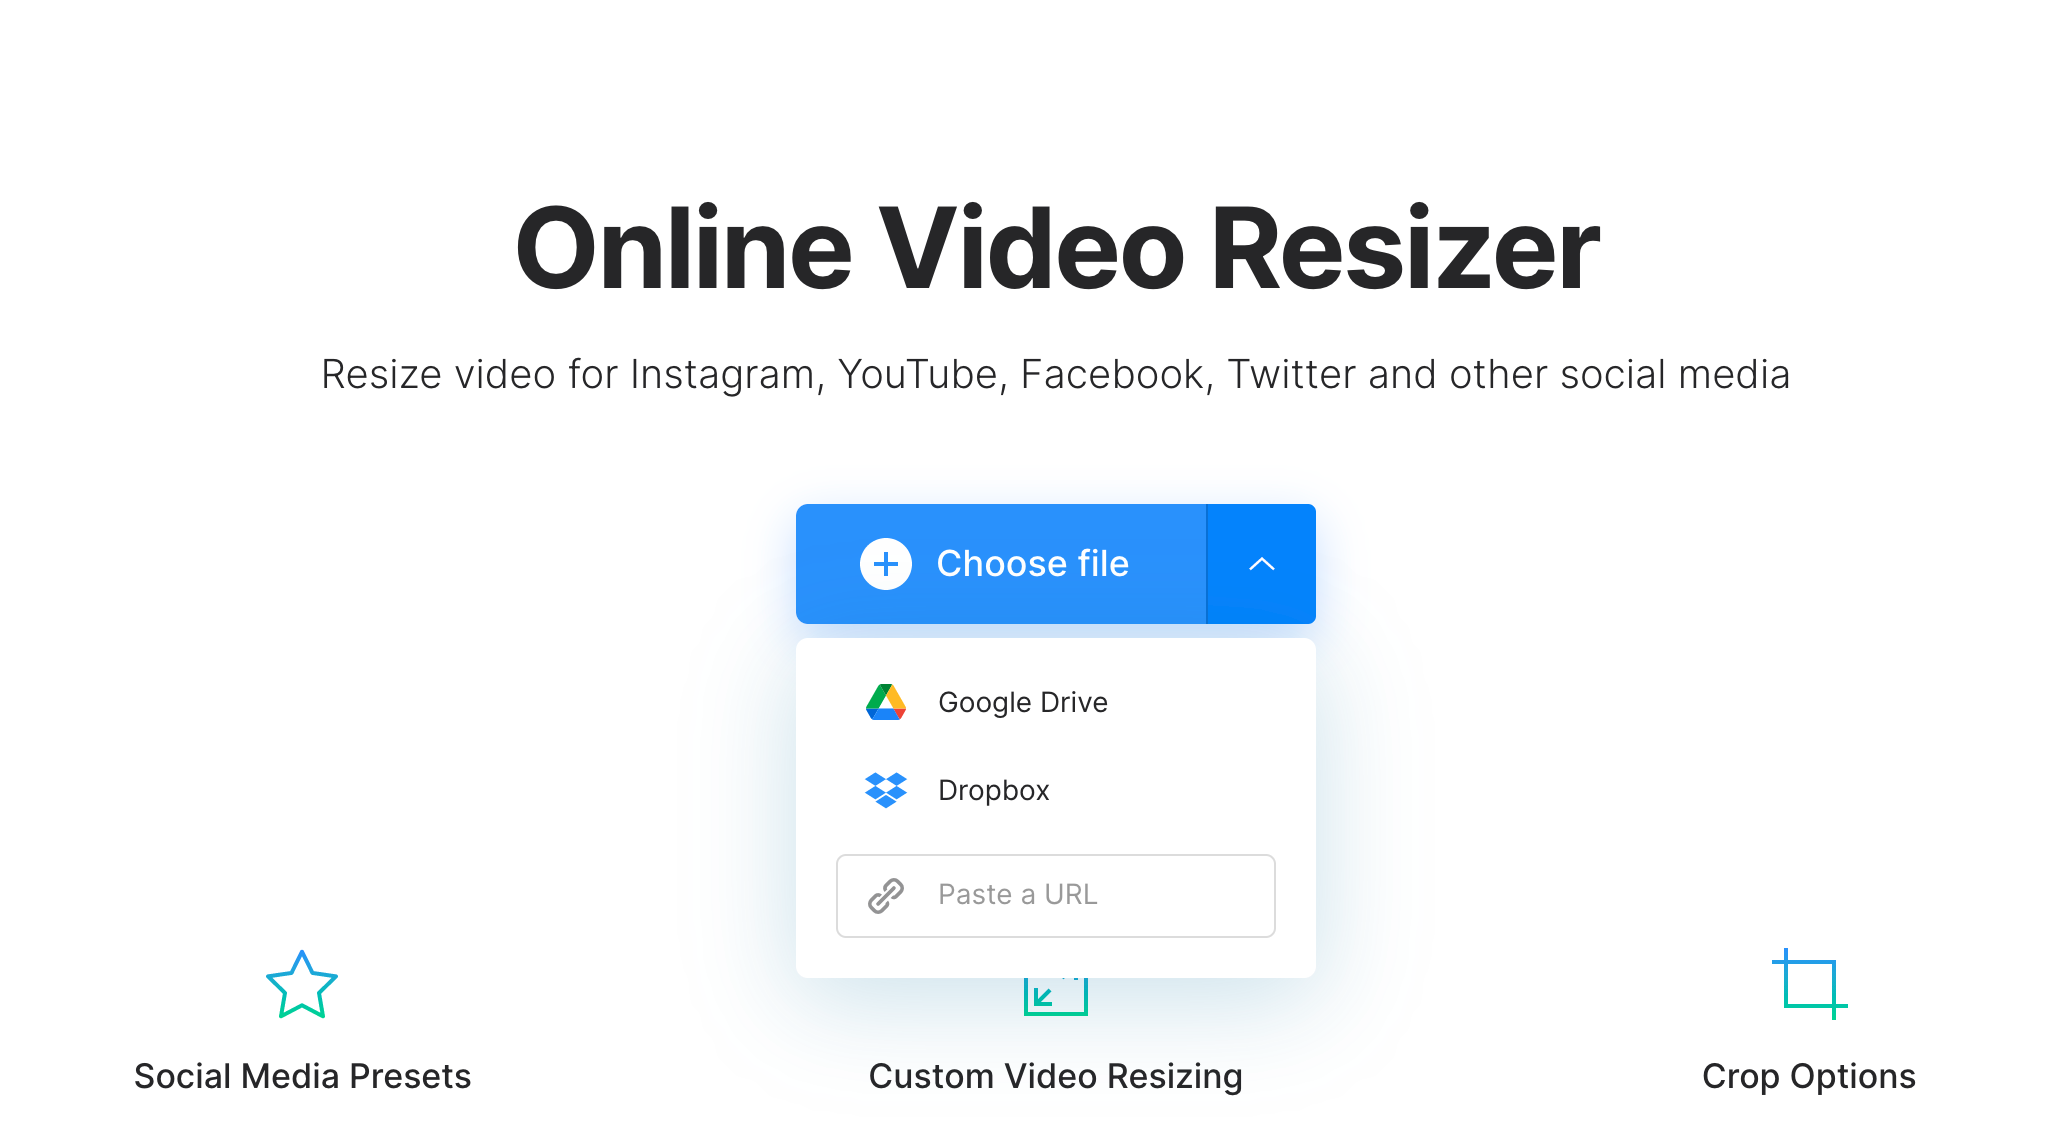 Upload file to change aspect ratio or resolution